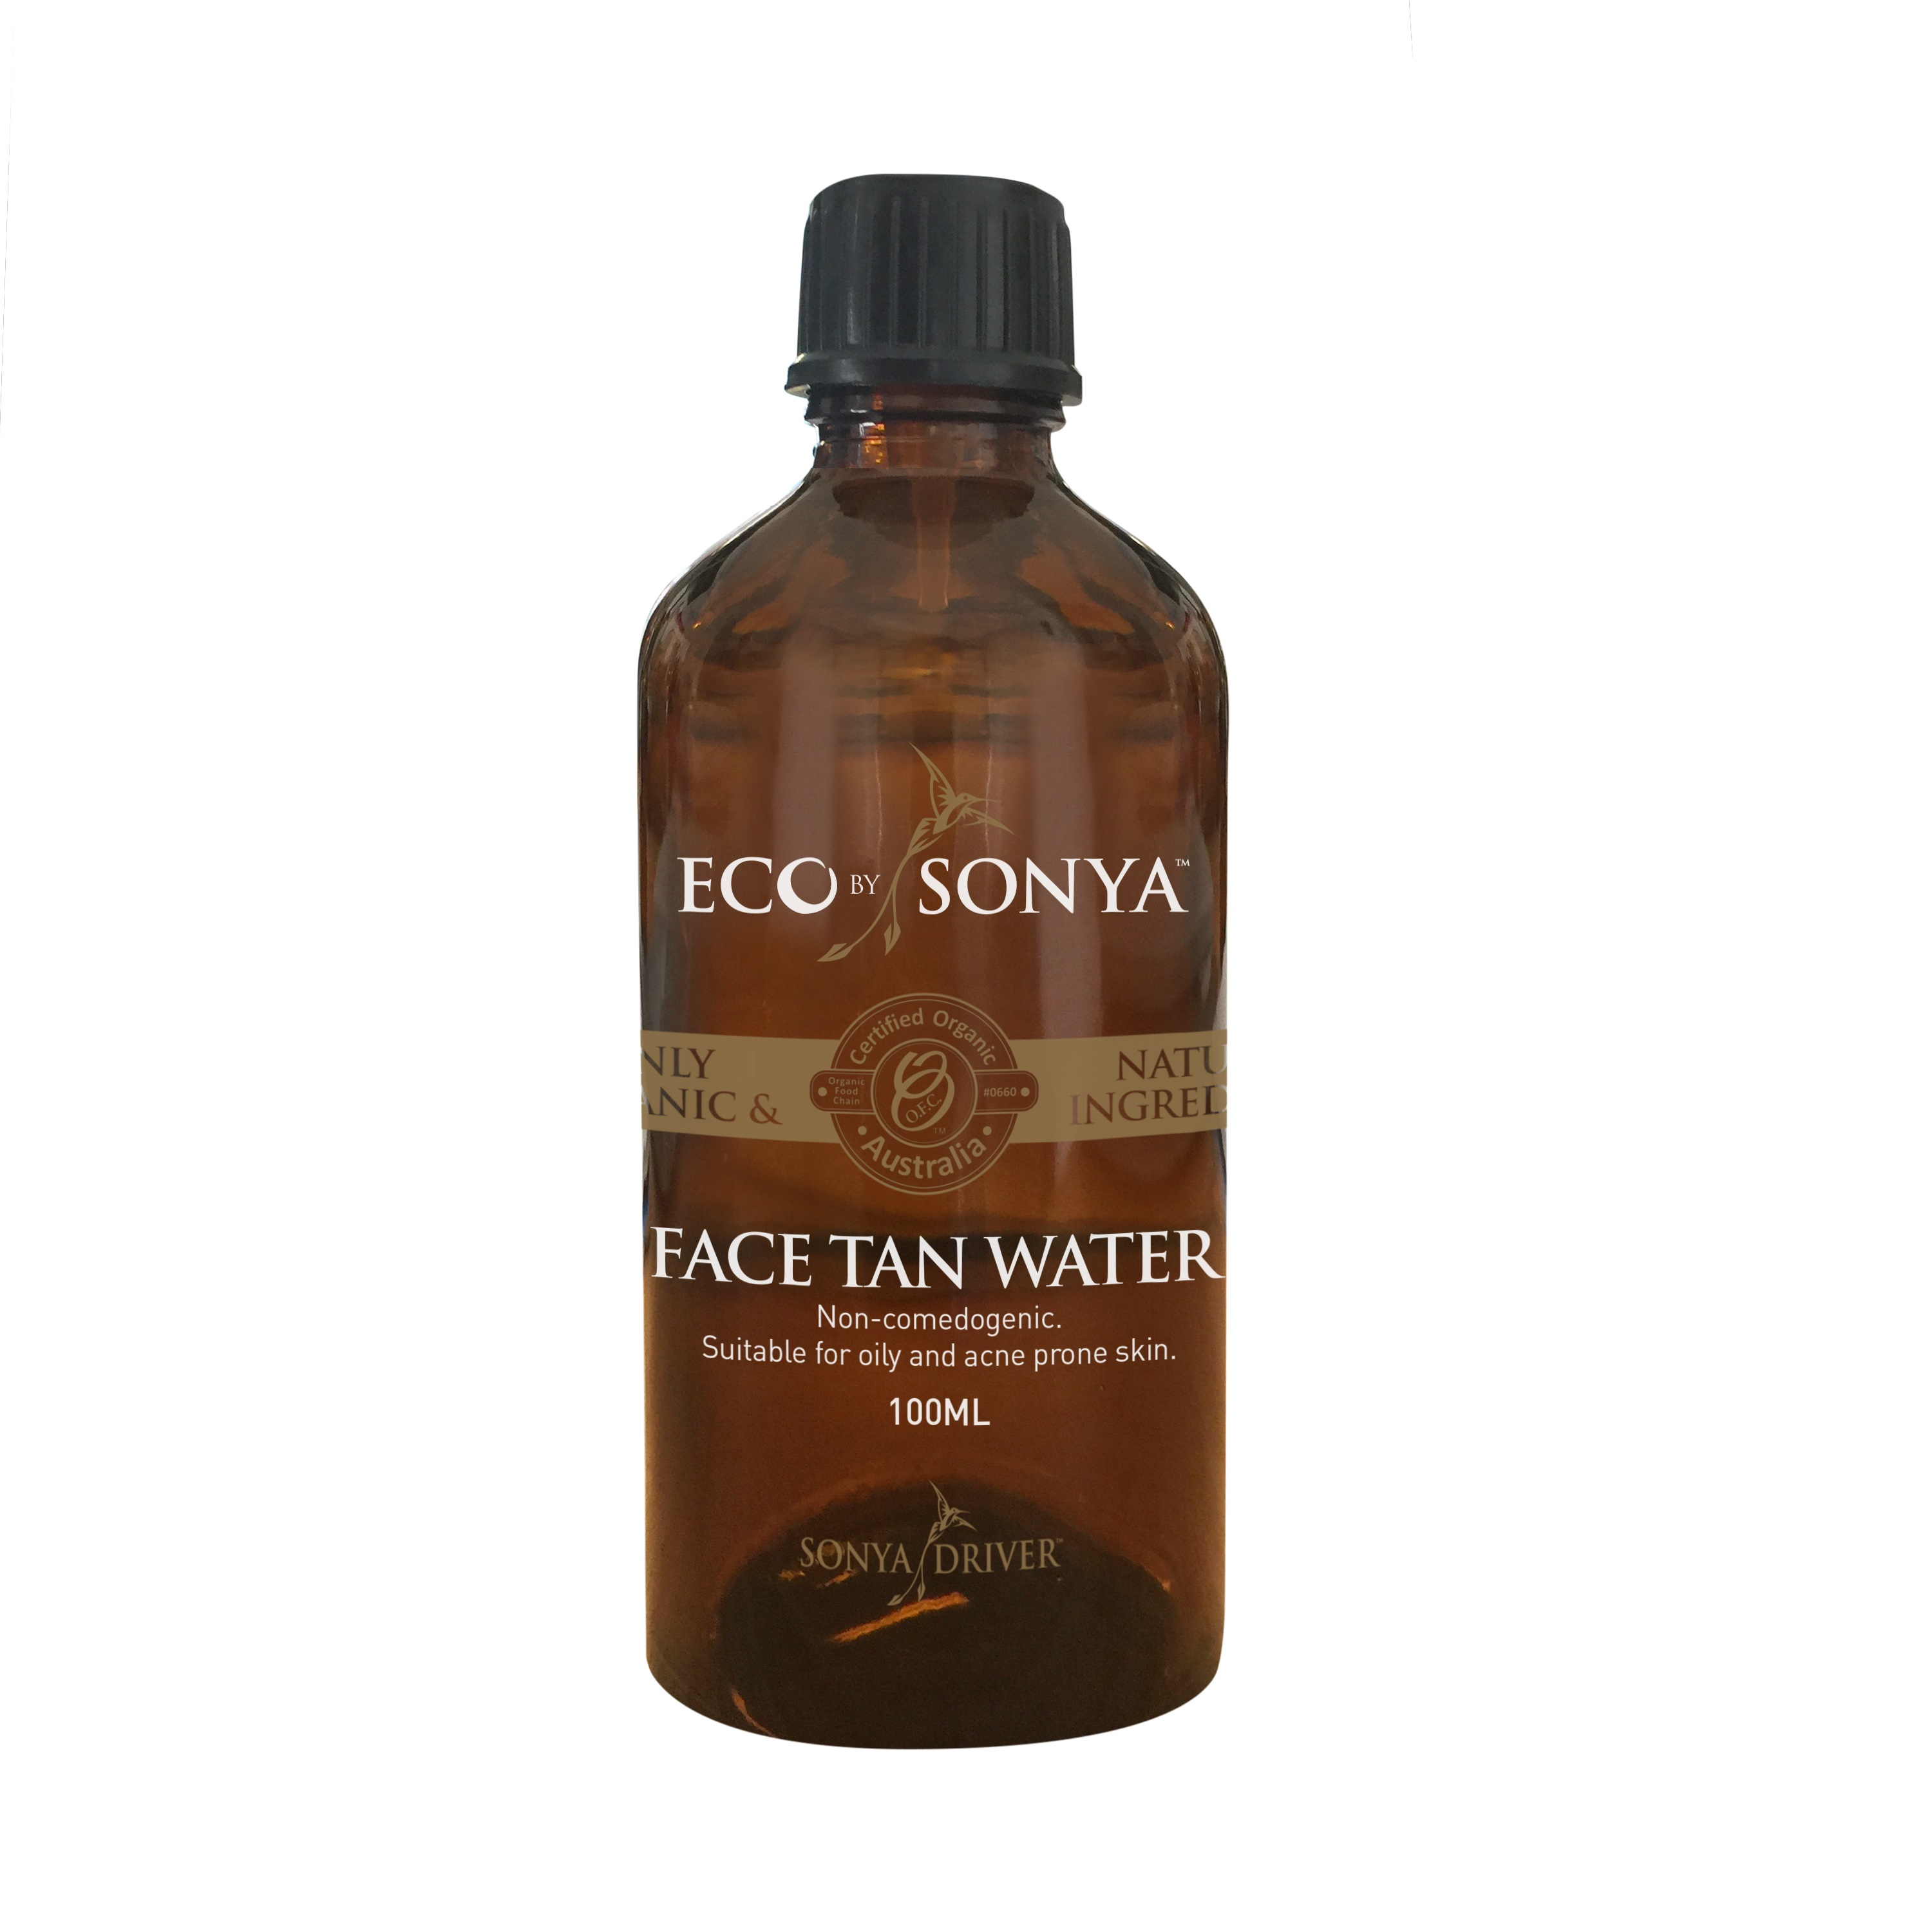 Eco by Sonya Face Tan Water Selvbruning 100ml - 4